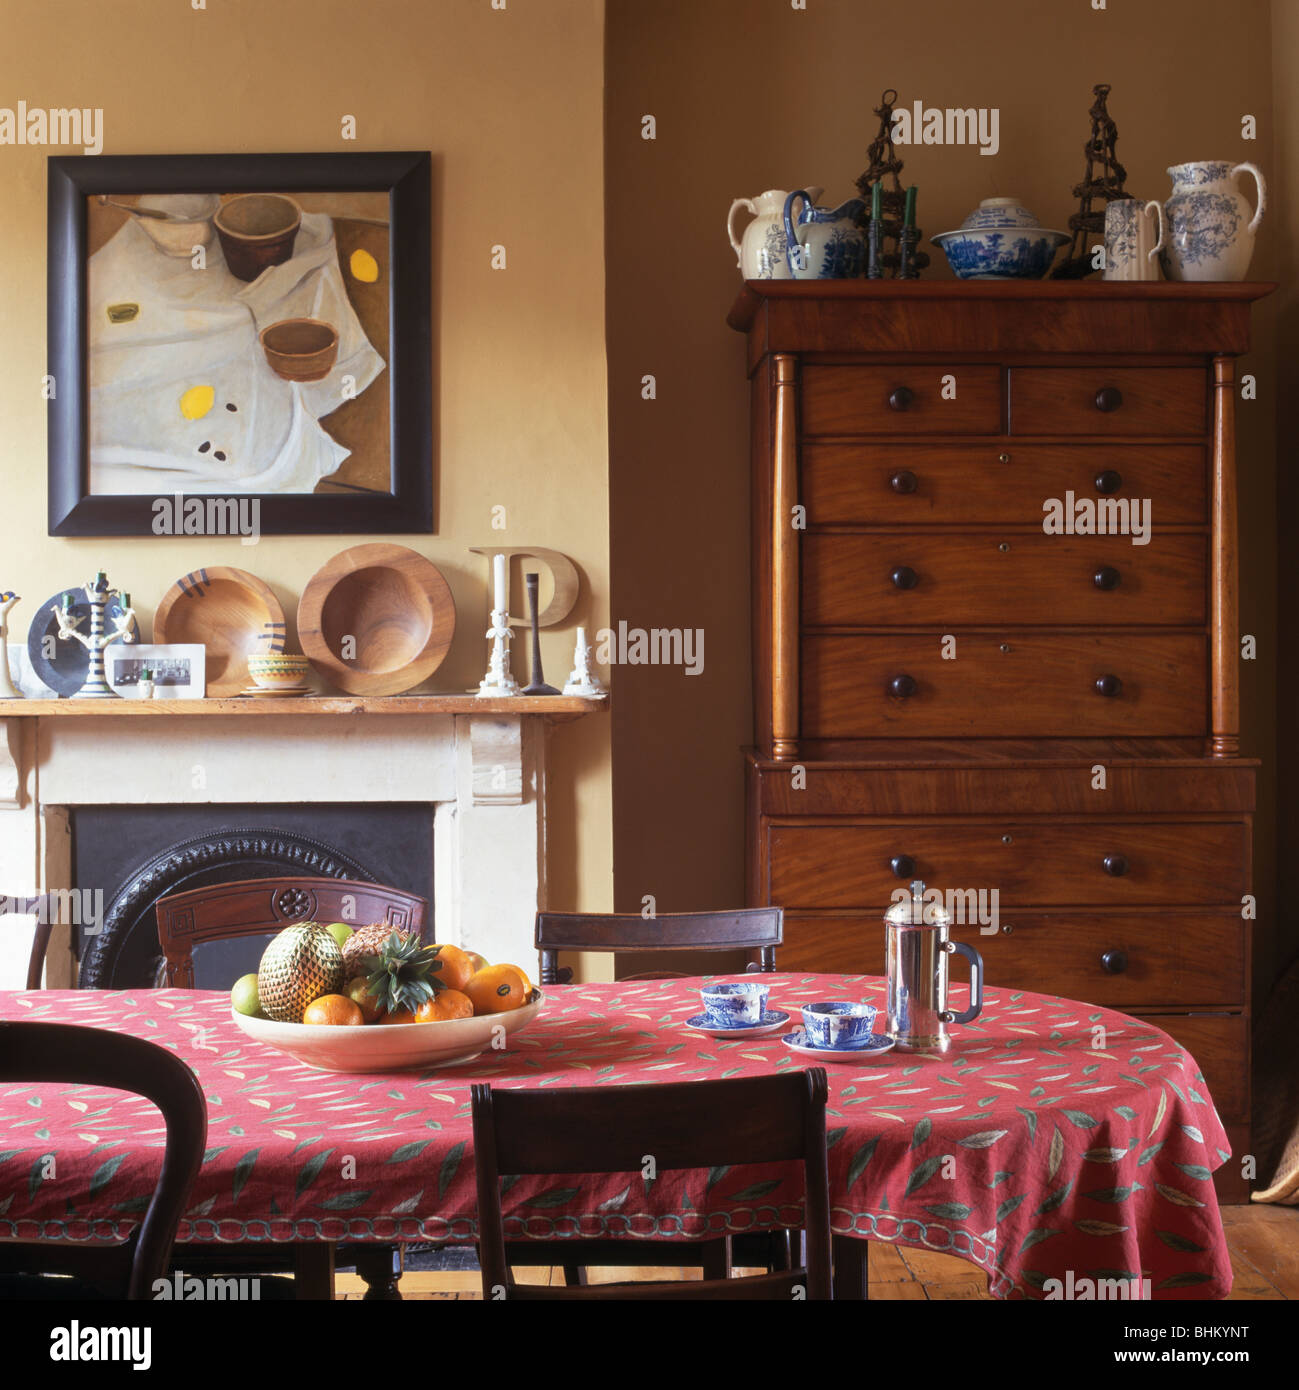 Pink patterned cloth on table in small dining room with tall